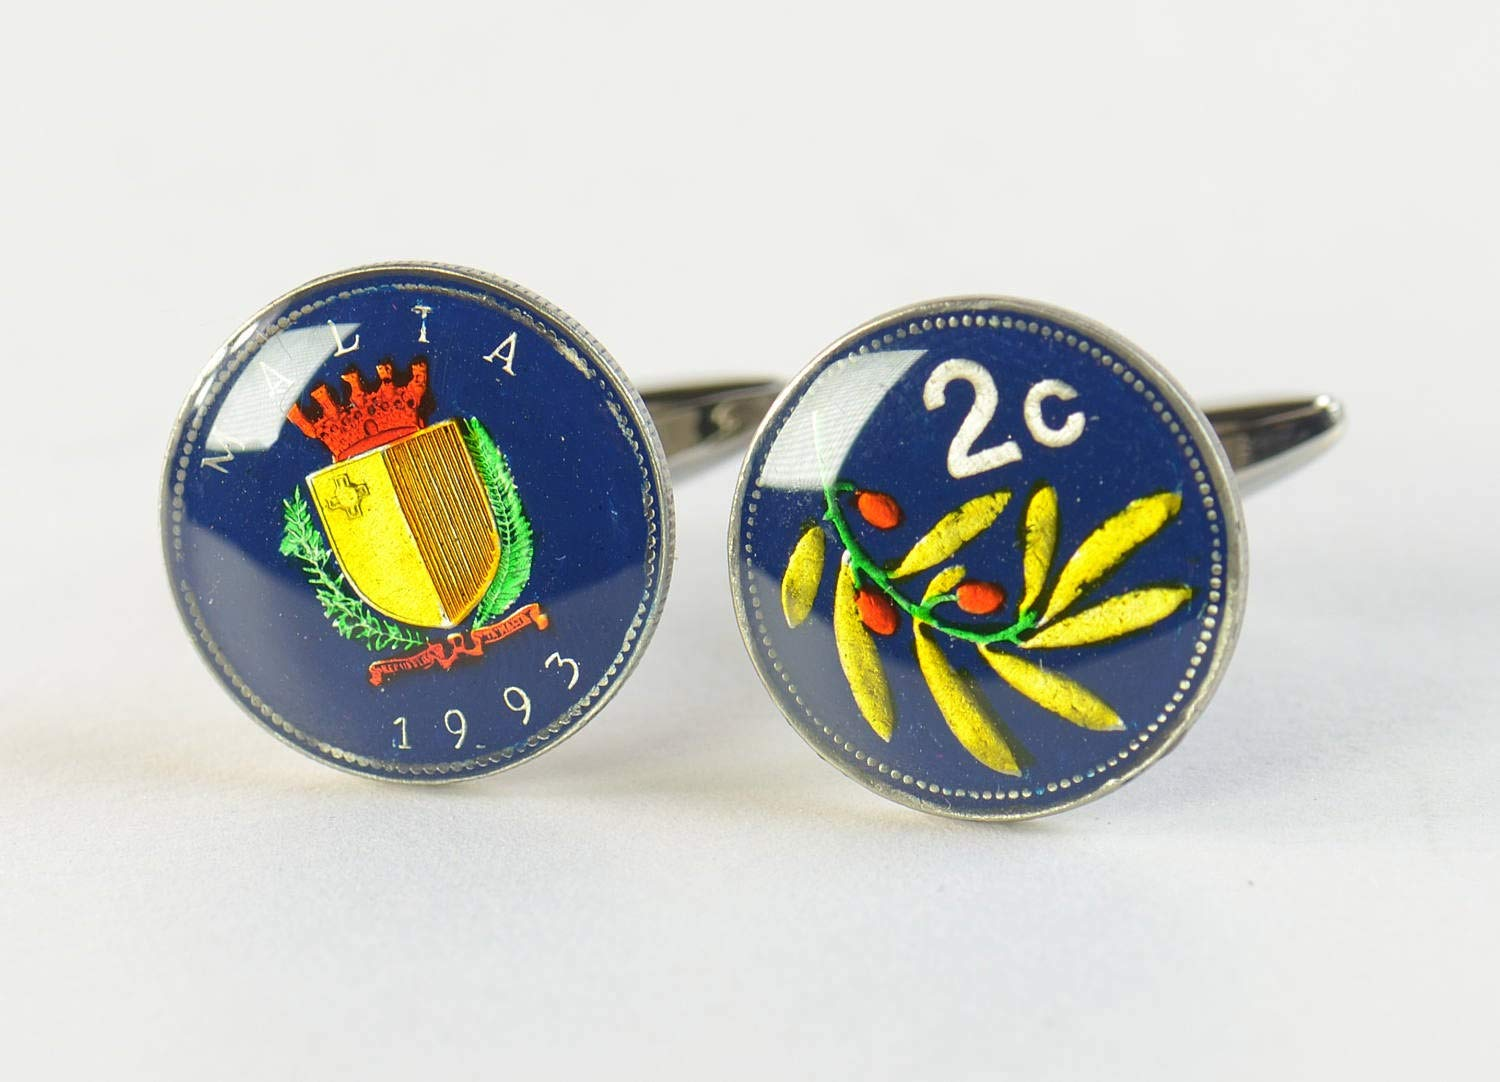 Cufflinks hand Special price painted enamel coin New popularity coin. Malta